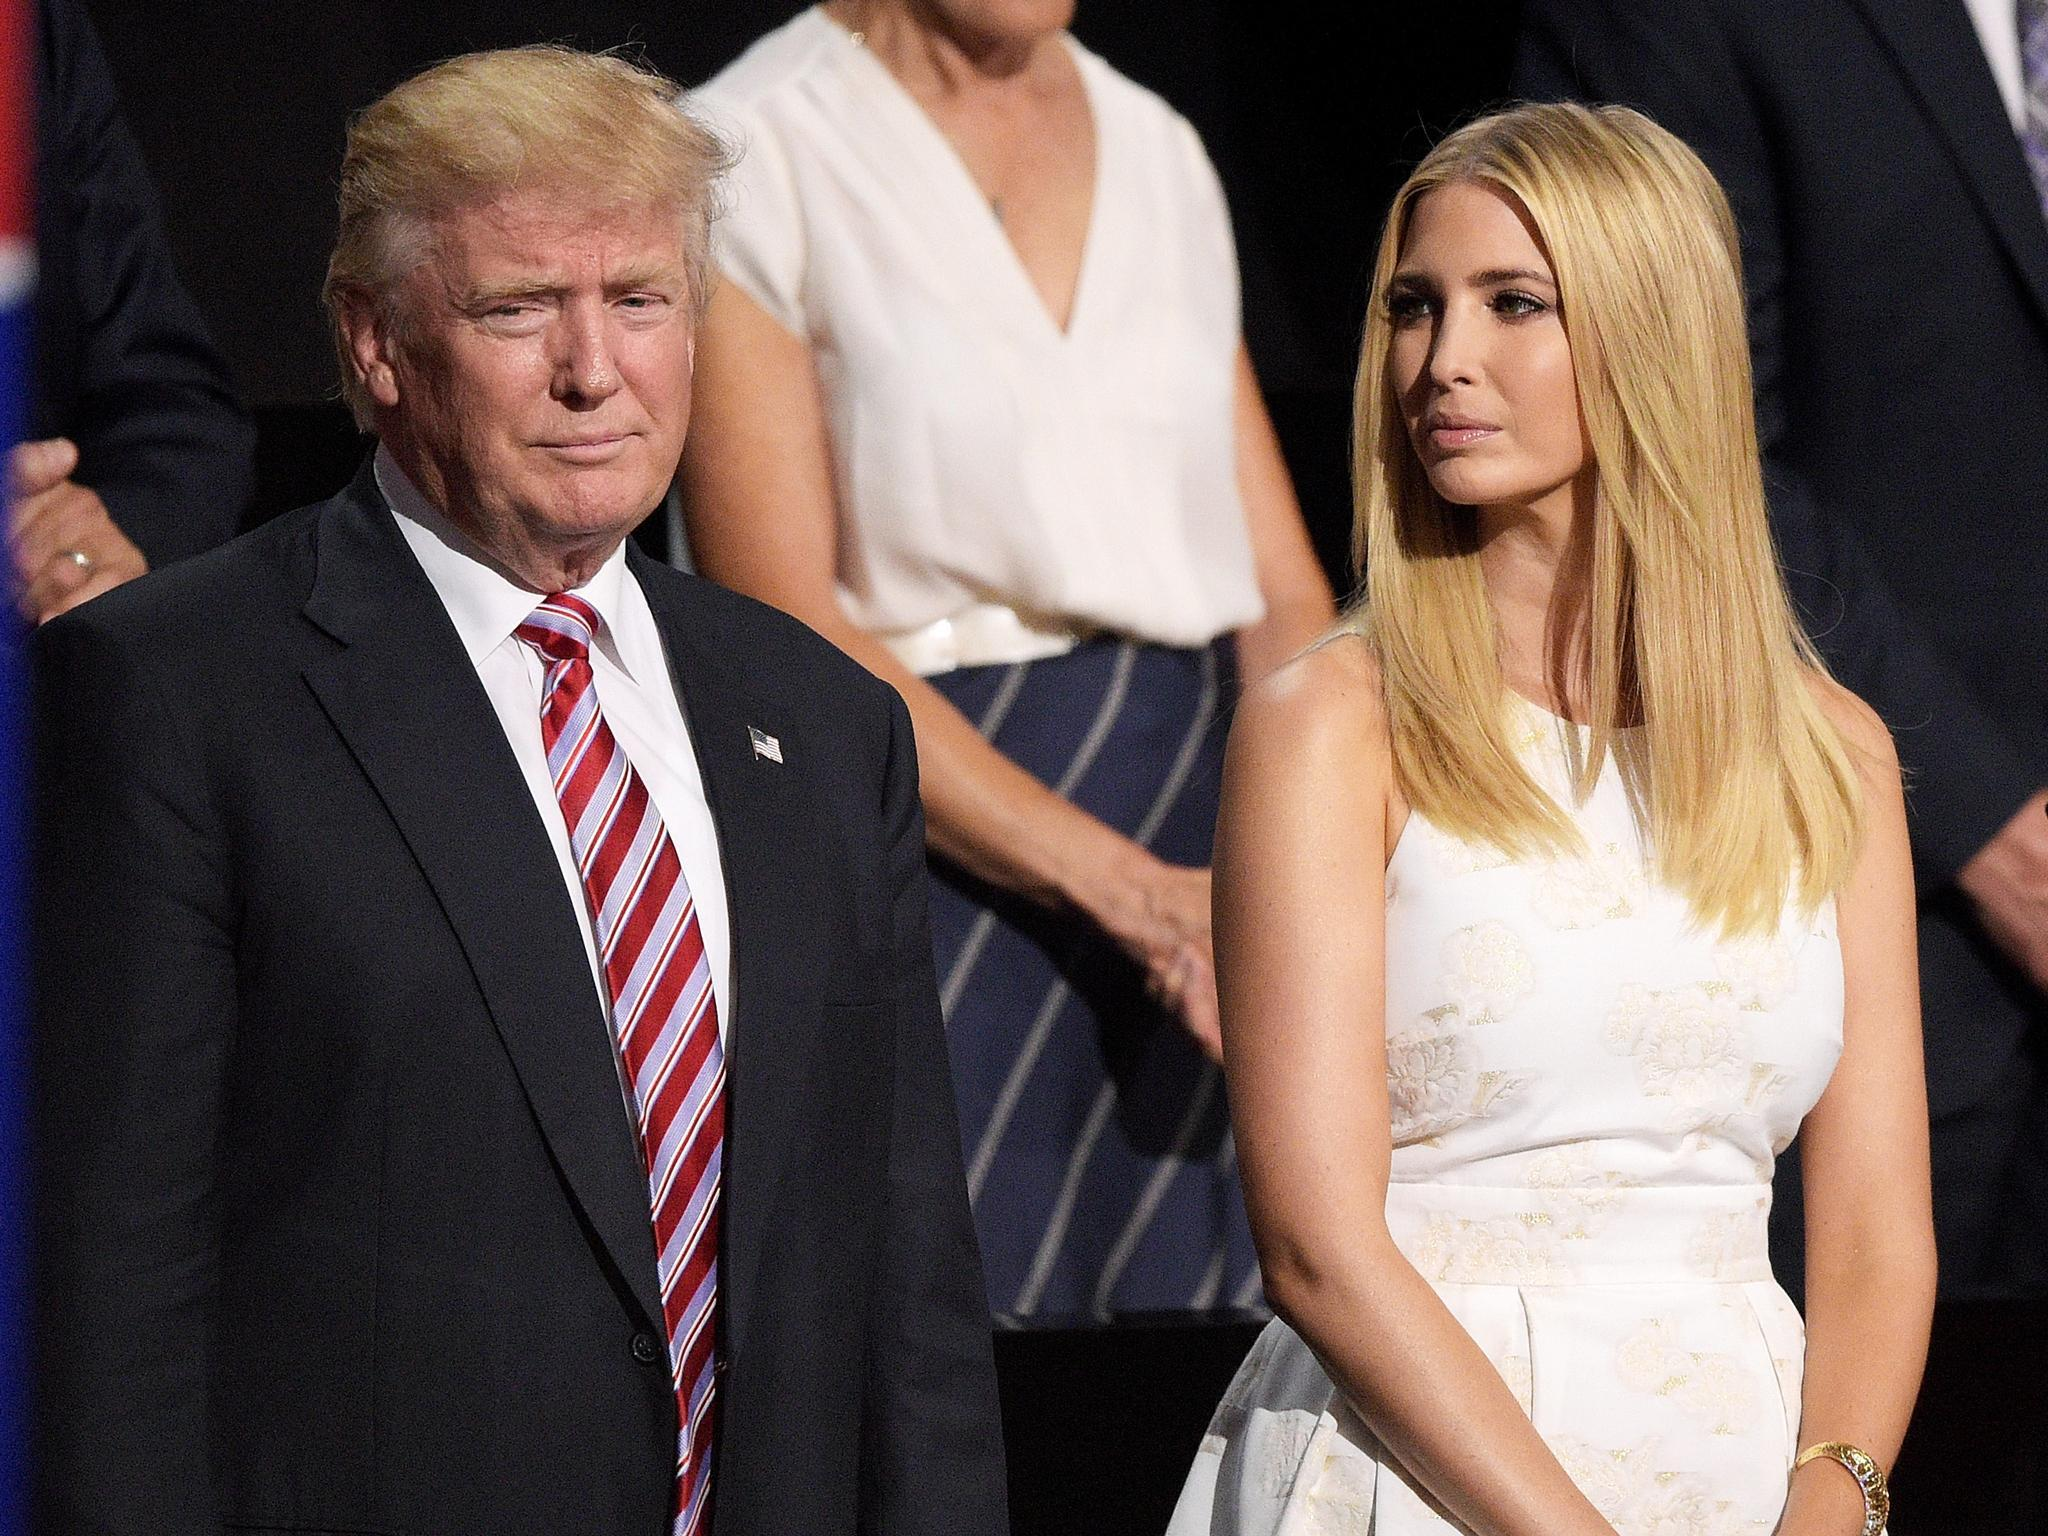 12-Times-Donald-Trump-Acted-Totally-Inappropriately-To-Ivanka-04